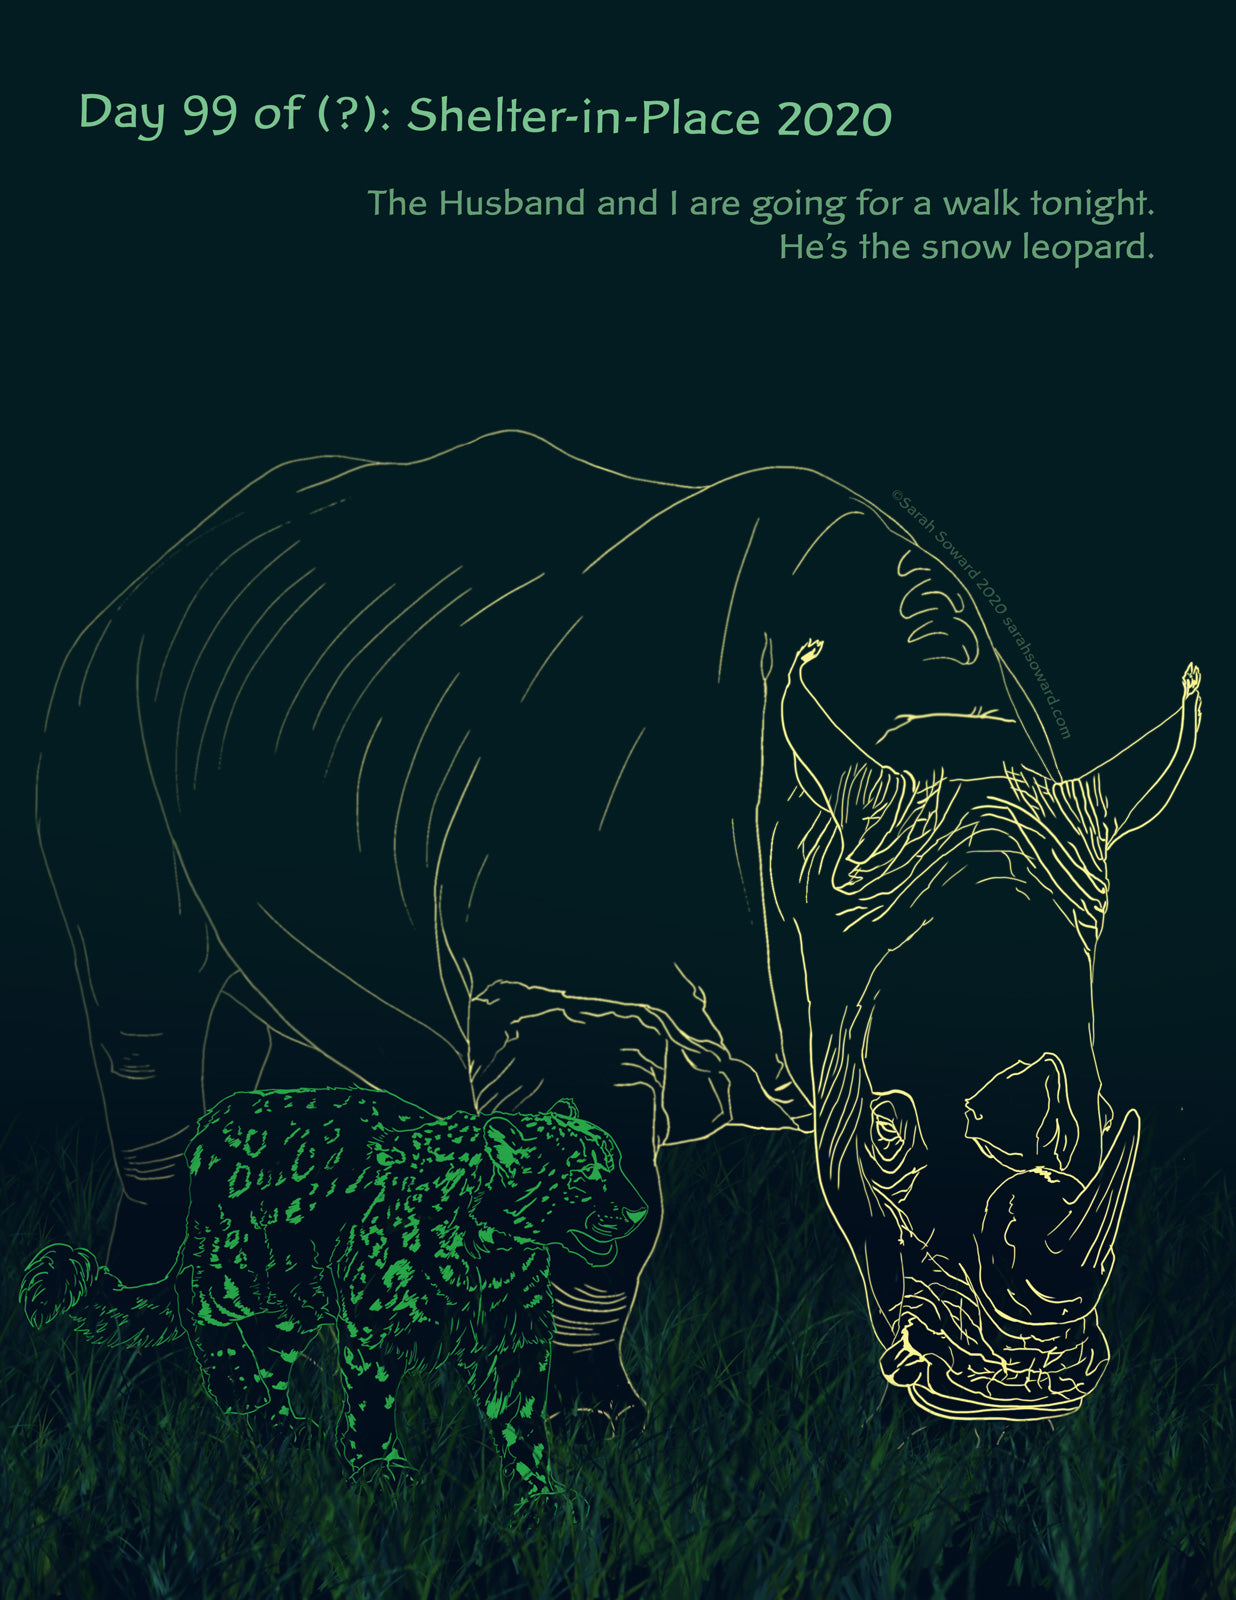 Line drawing of a bright green snow leopard and a softly yellow rhino walking together on a dark background. The text on the image reads  The Husband and I are going for a walk tonight.  He's the snow leopard.